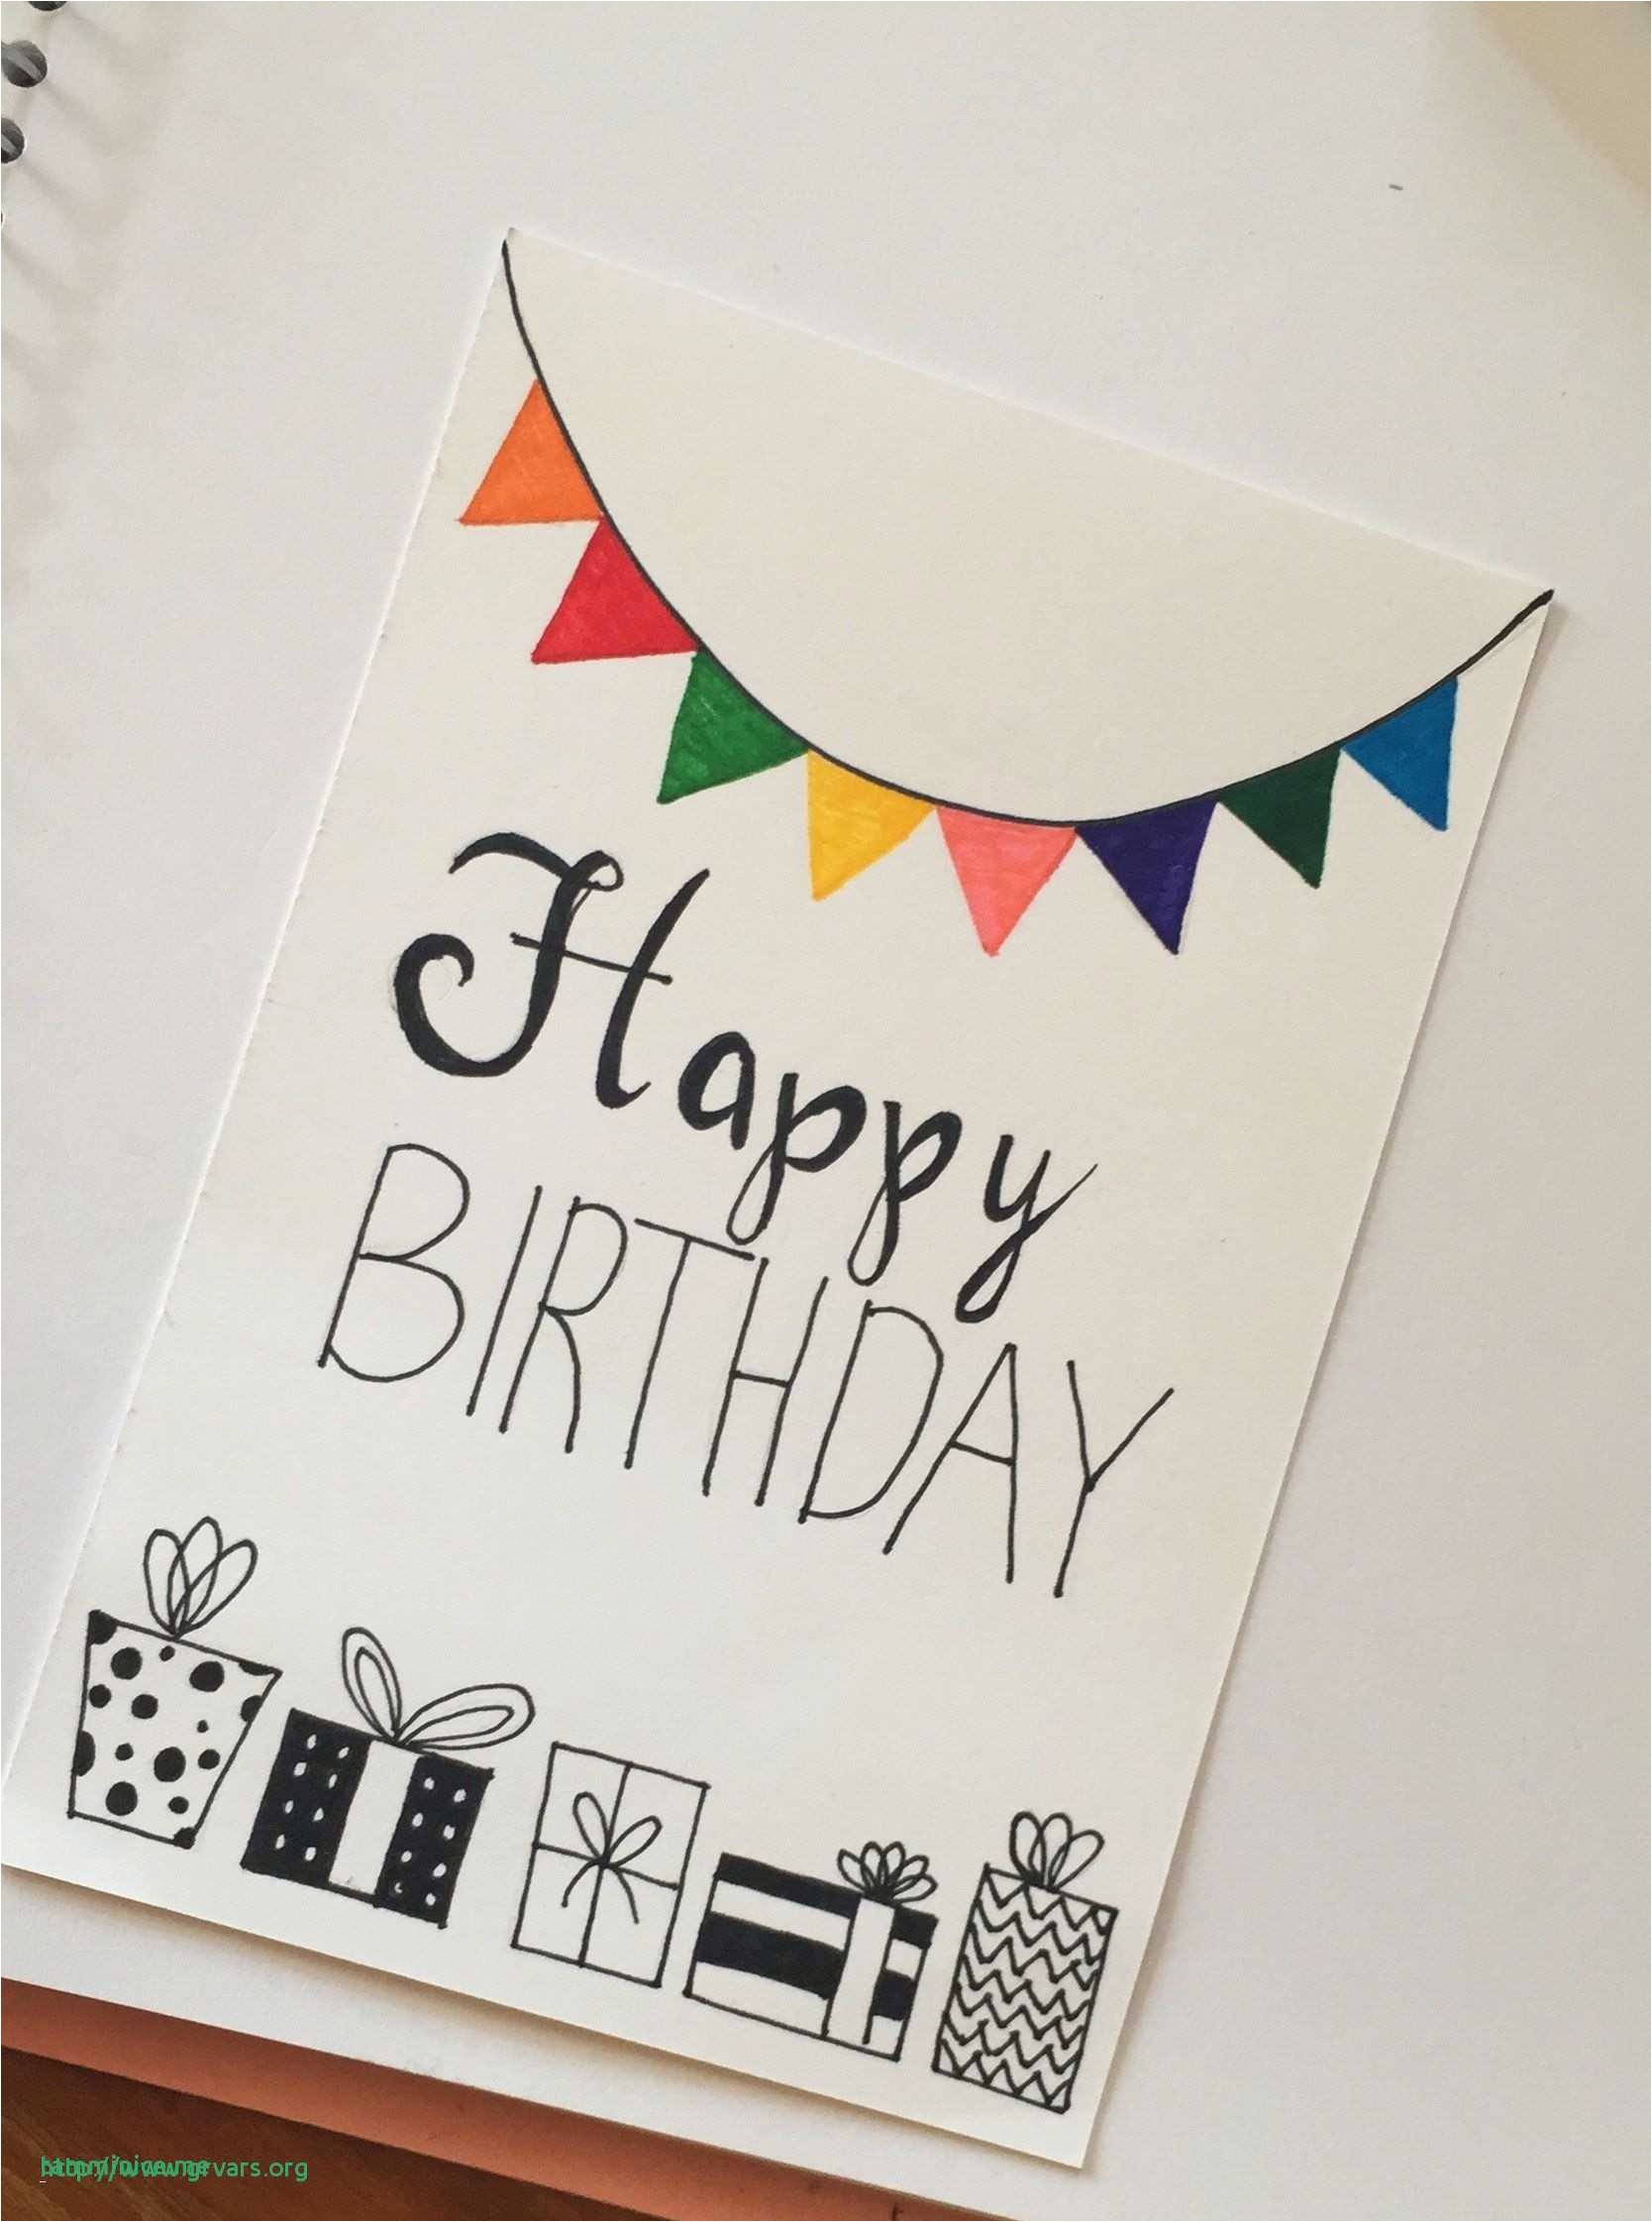 Making Birthday Card Ideas Diy Birthday Cards Simple Simple Handmade Birthday Cards Awesome